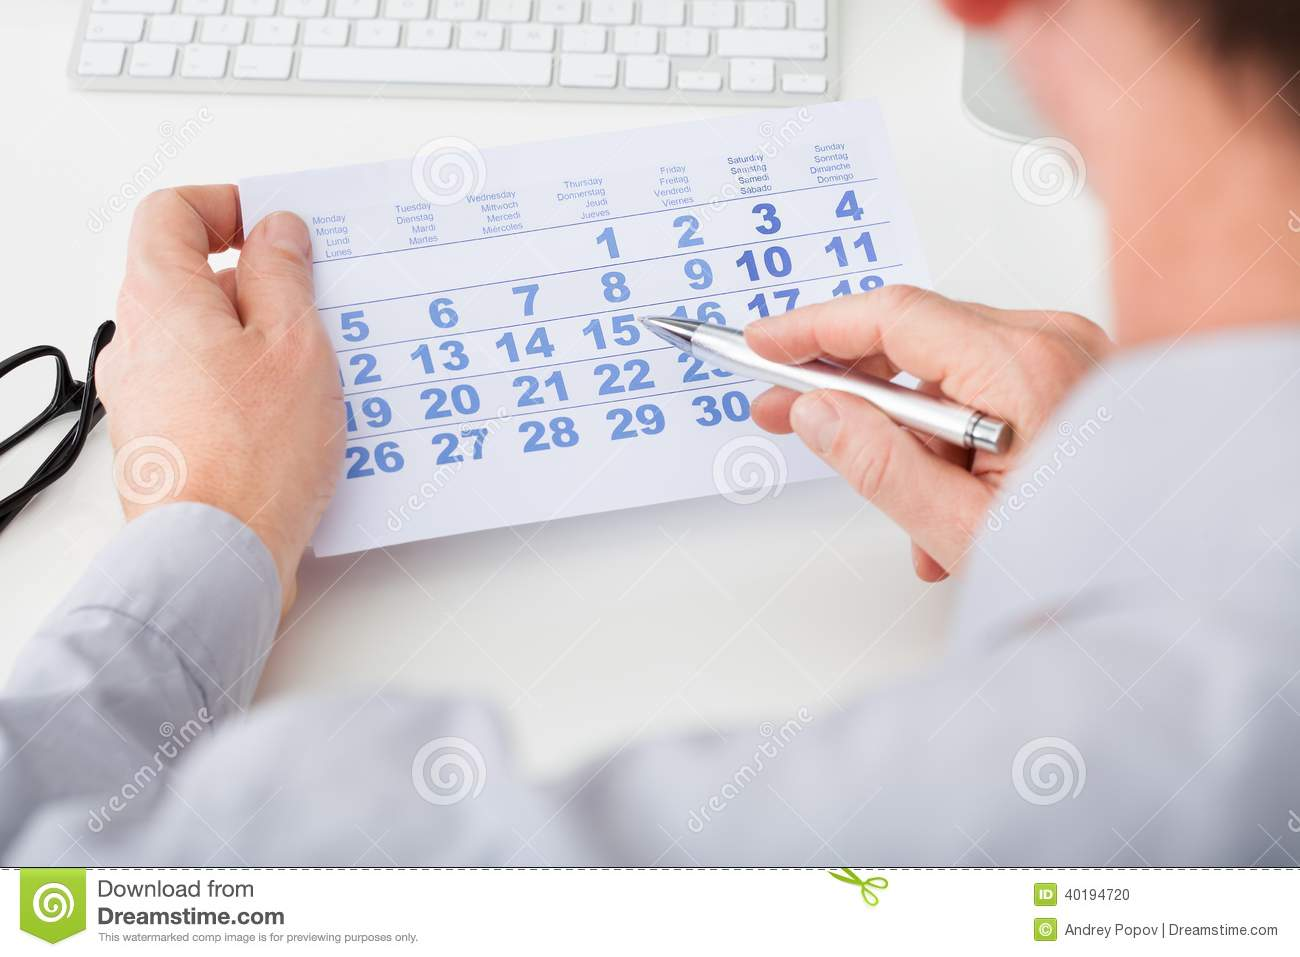 Calendar Photography Jobs : Hand holding calendar and pen stock photo image of